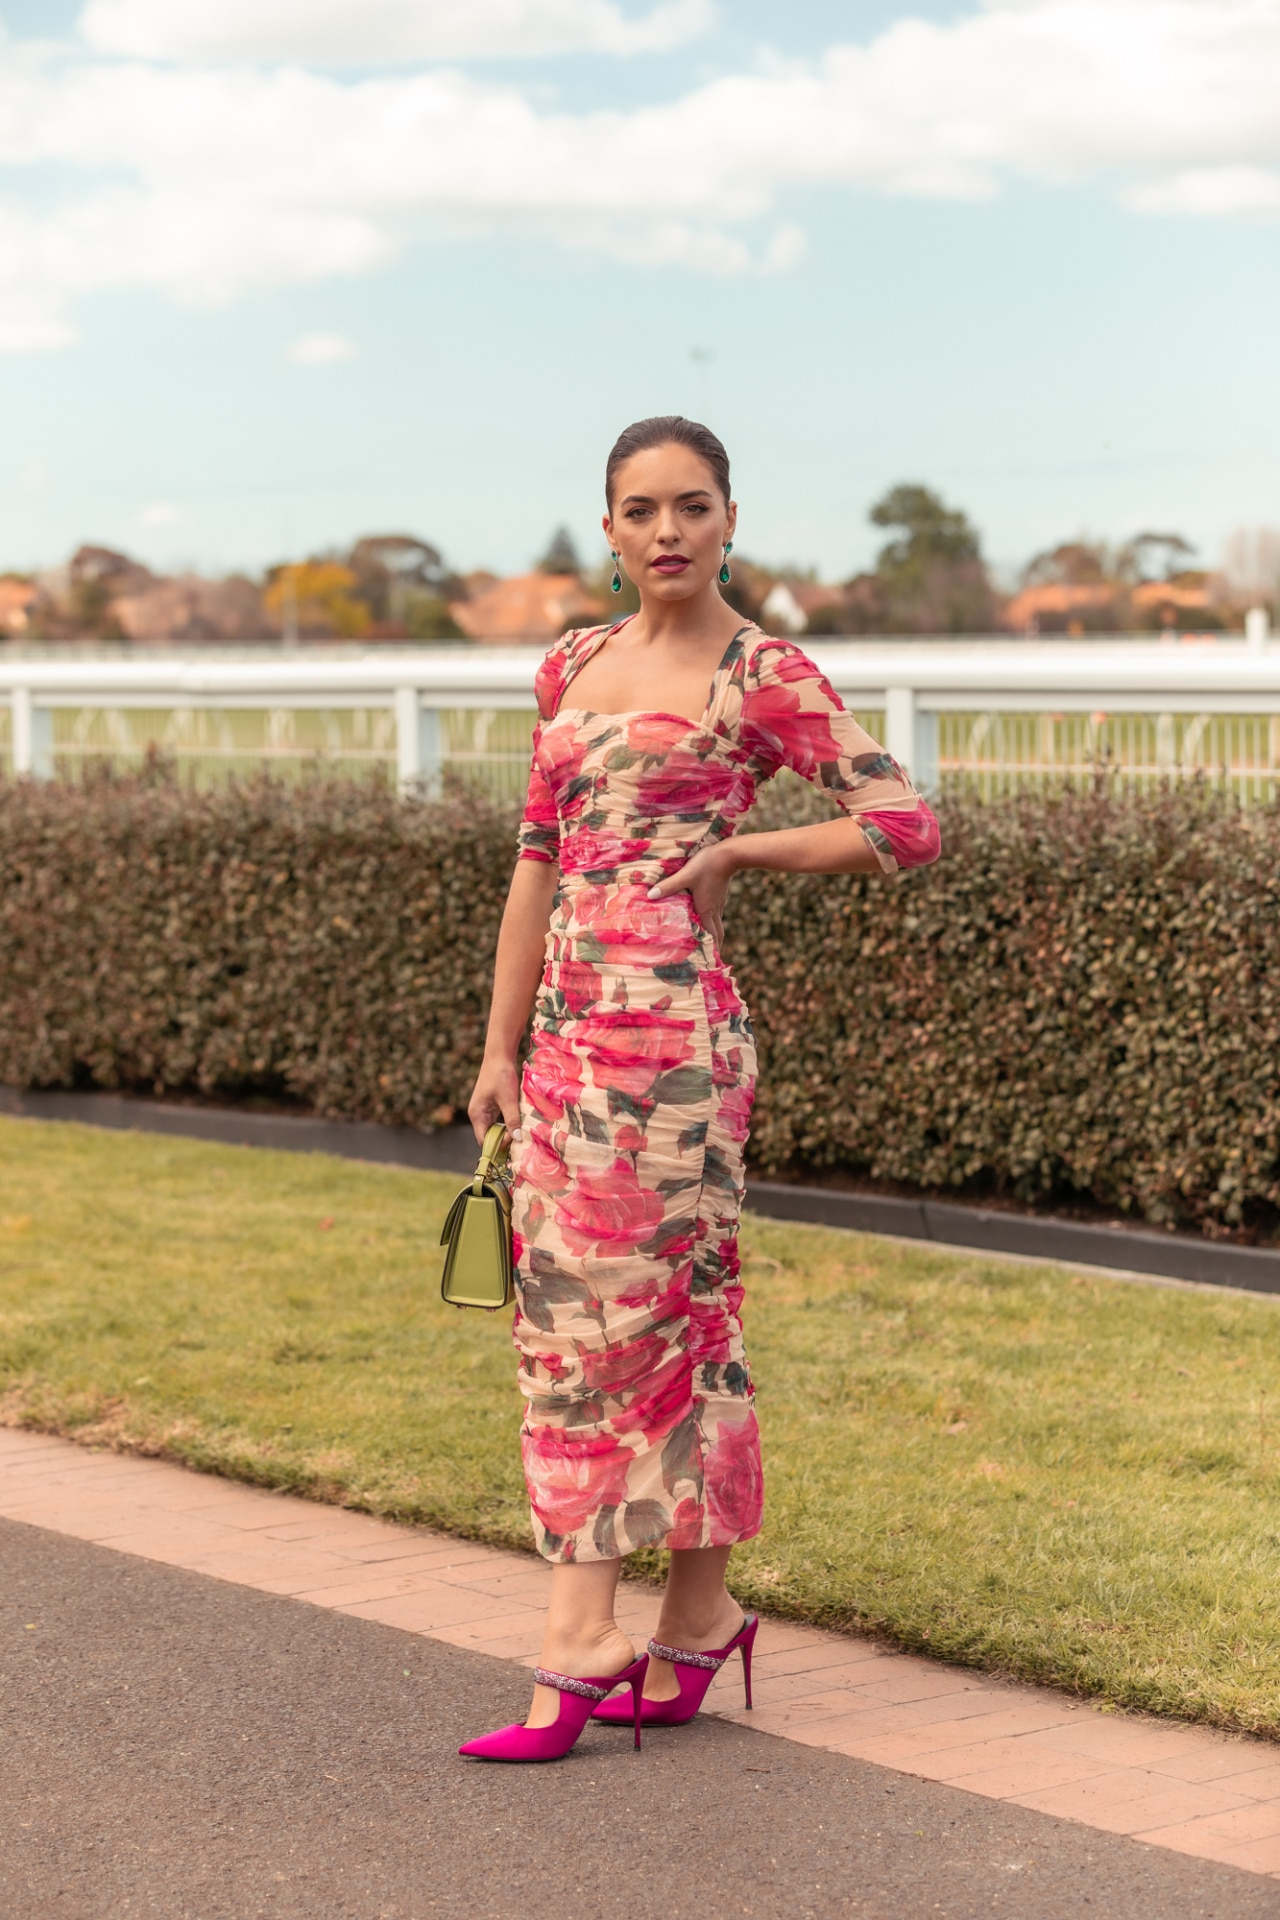 The best dressed racegoers from 2019's spring racing season